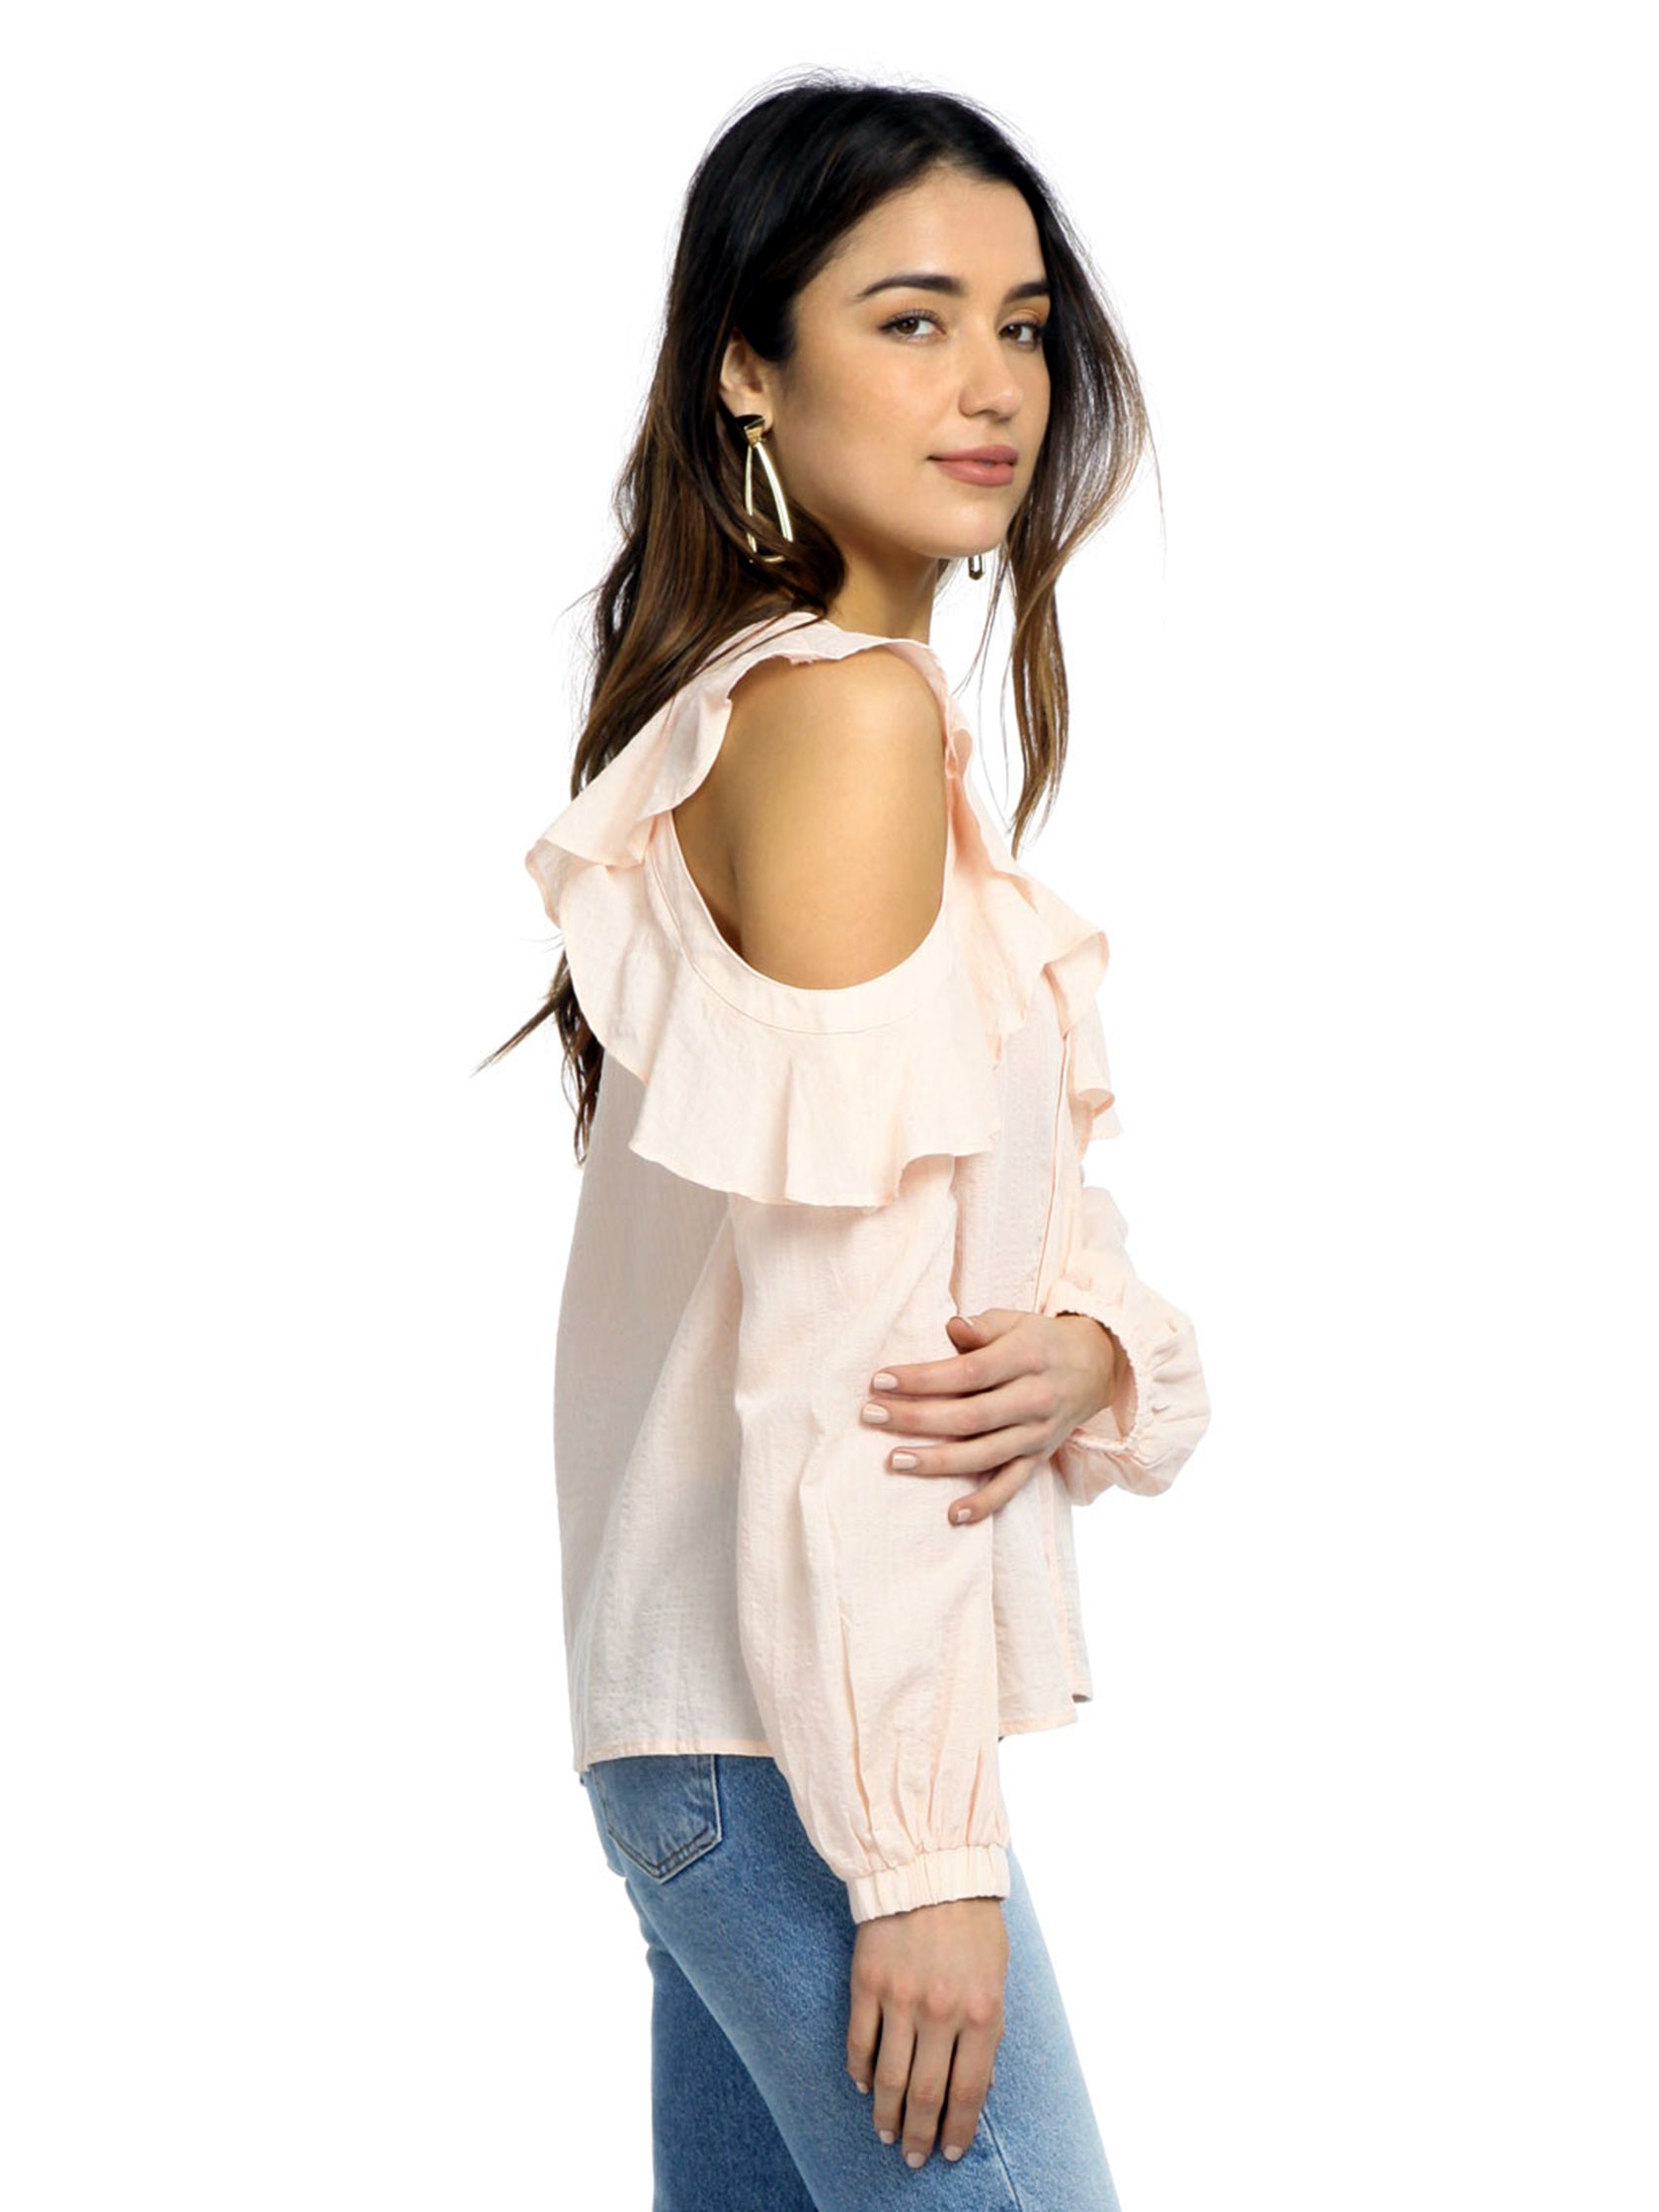 Women outfit in a top rental from ASTR called Paige Off The Shoulder Blouse